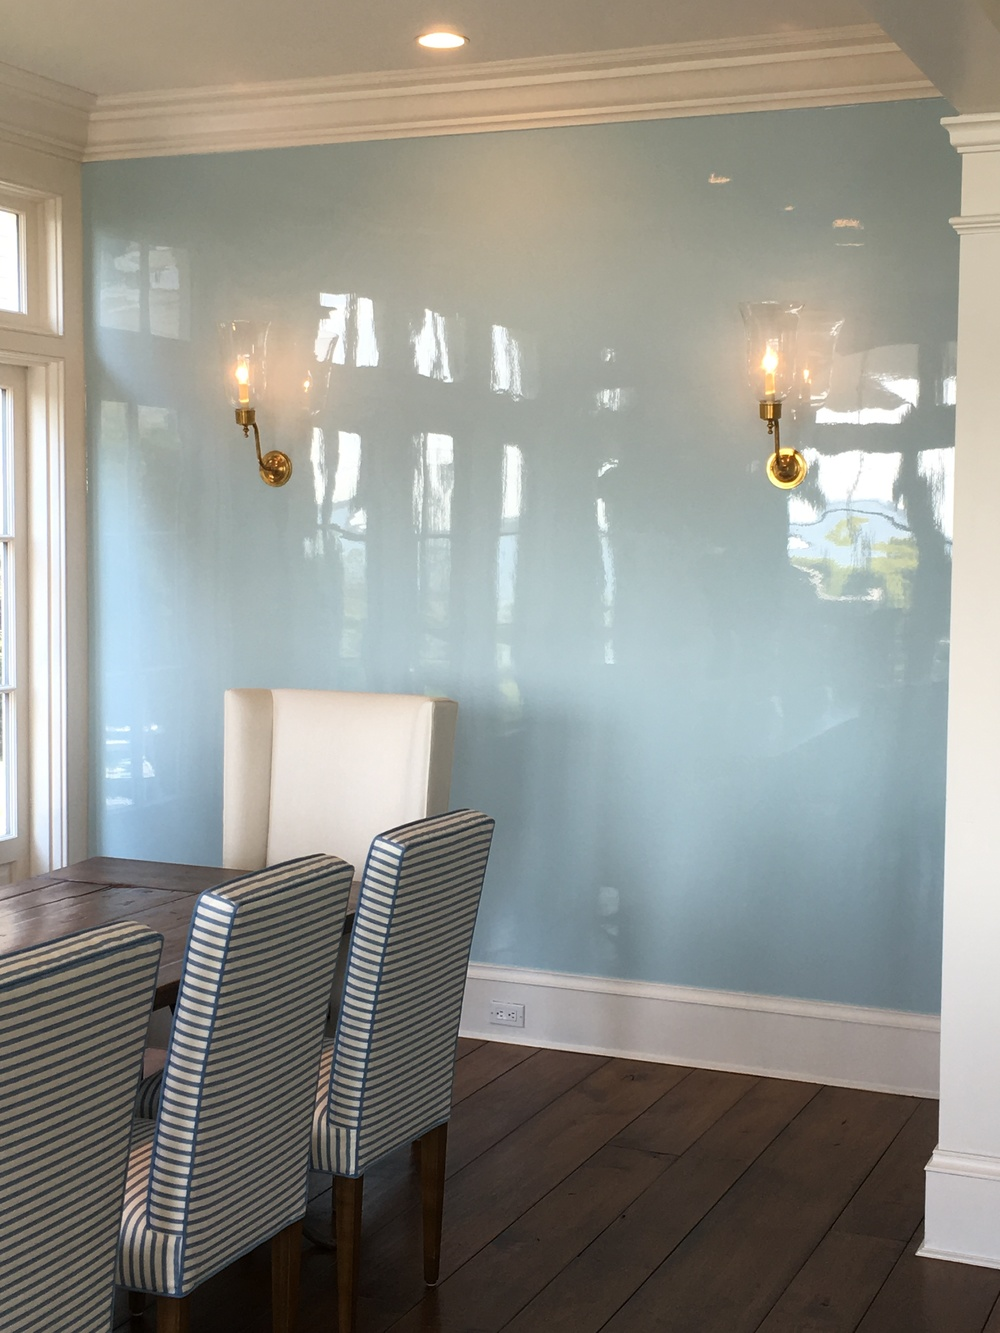 Choosing The Right Type Of Finish To Go With The Surface You Are Painting  May Seem Like A Grueling Task Because There Is An Overwhelming Range Of  Paint ...